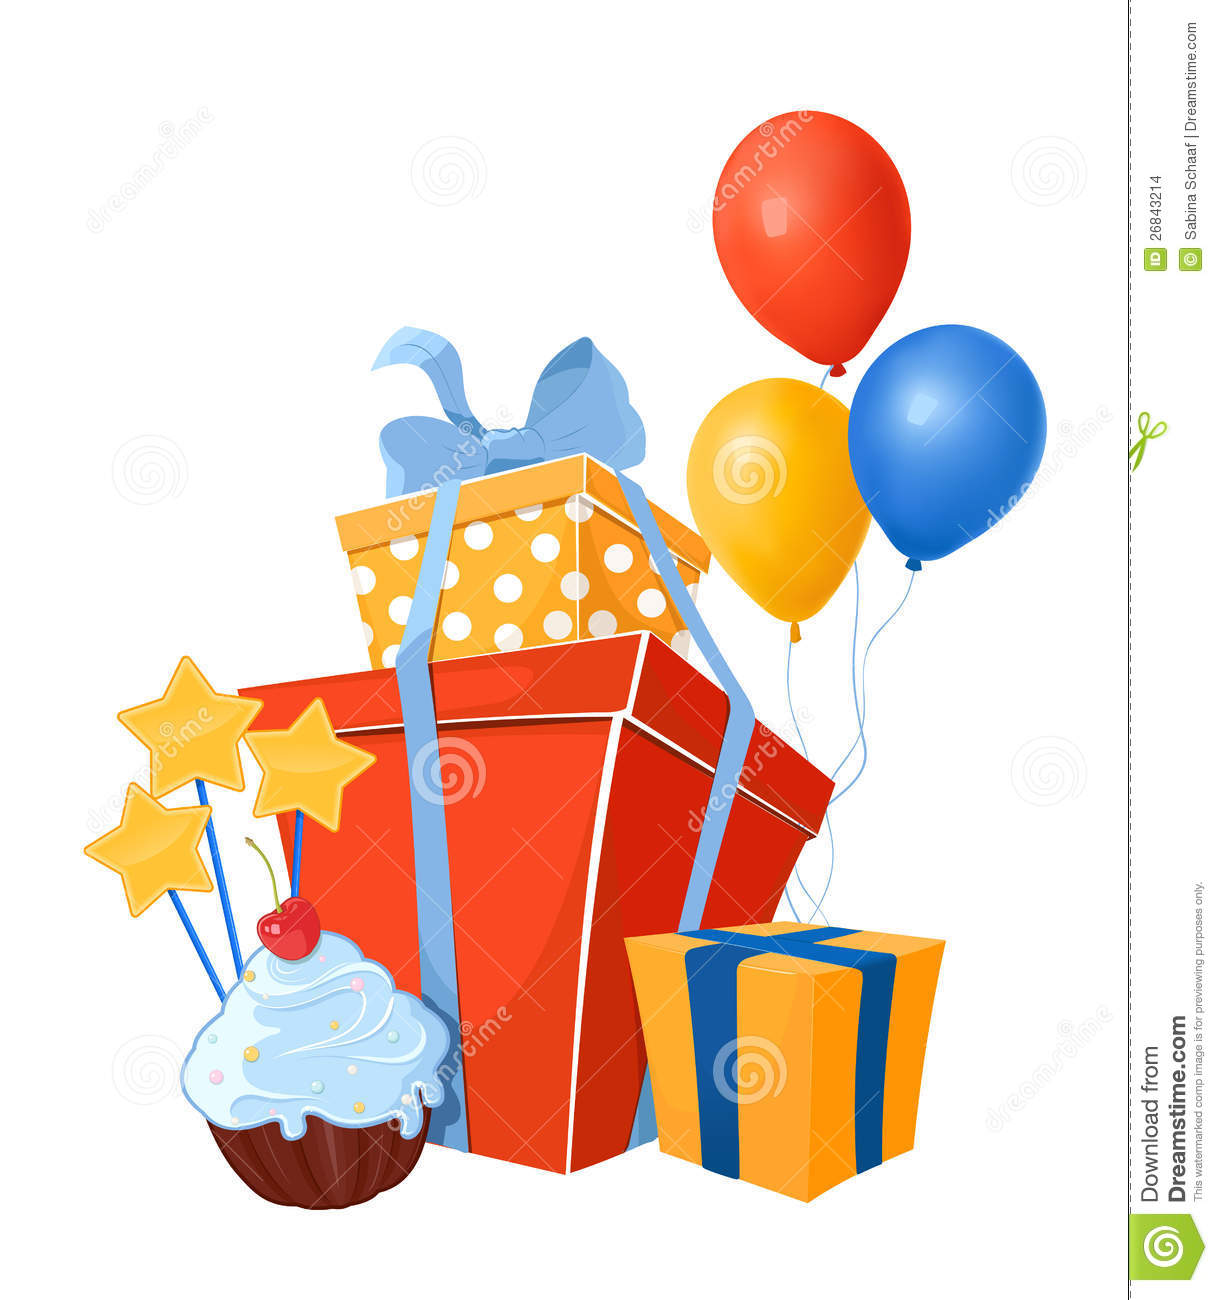 Birthday Design Elements Stock Images - Image: 26843214